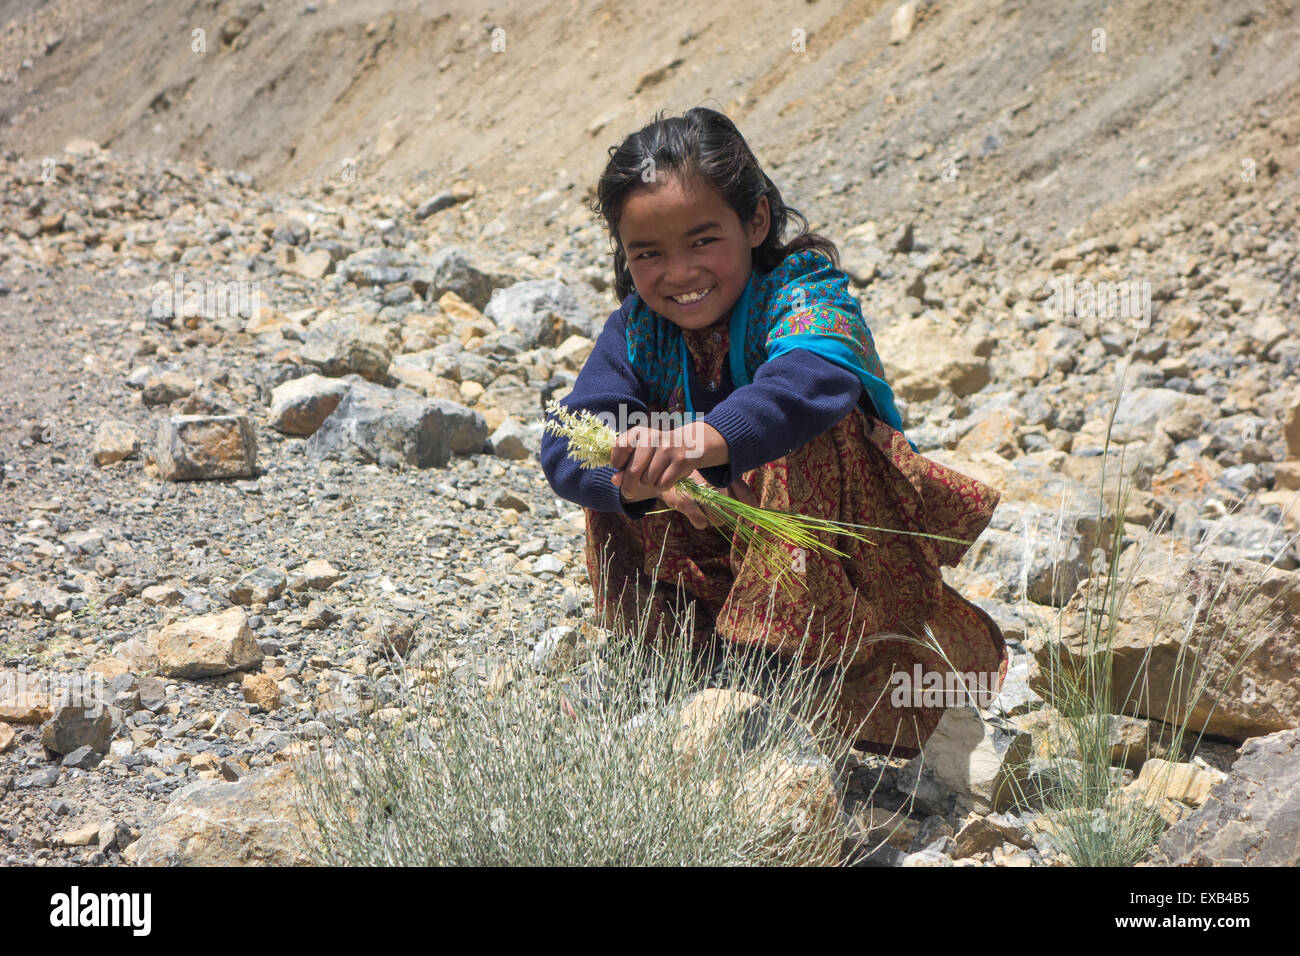 Spiti Valley - young girl from a remote high altitude village in the Spiti Valley, Himachal Pradesh, Indian Himalayas - Stock Image